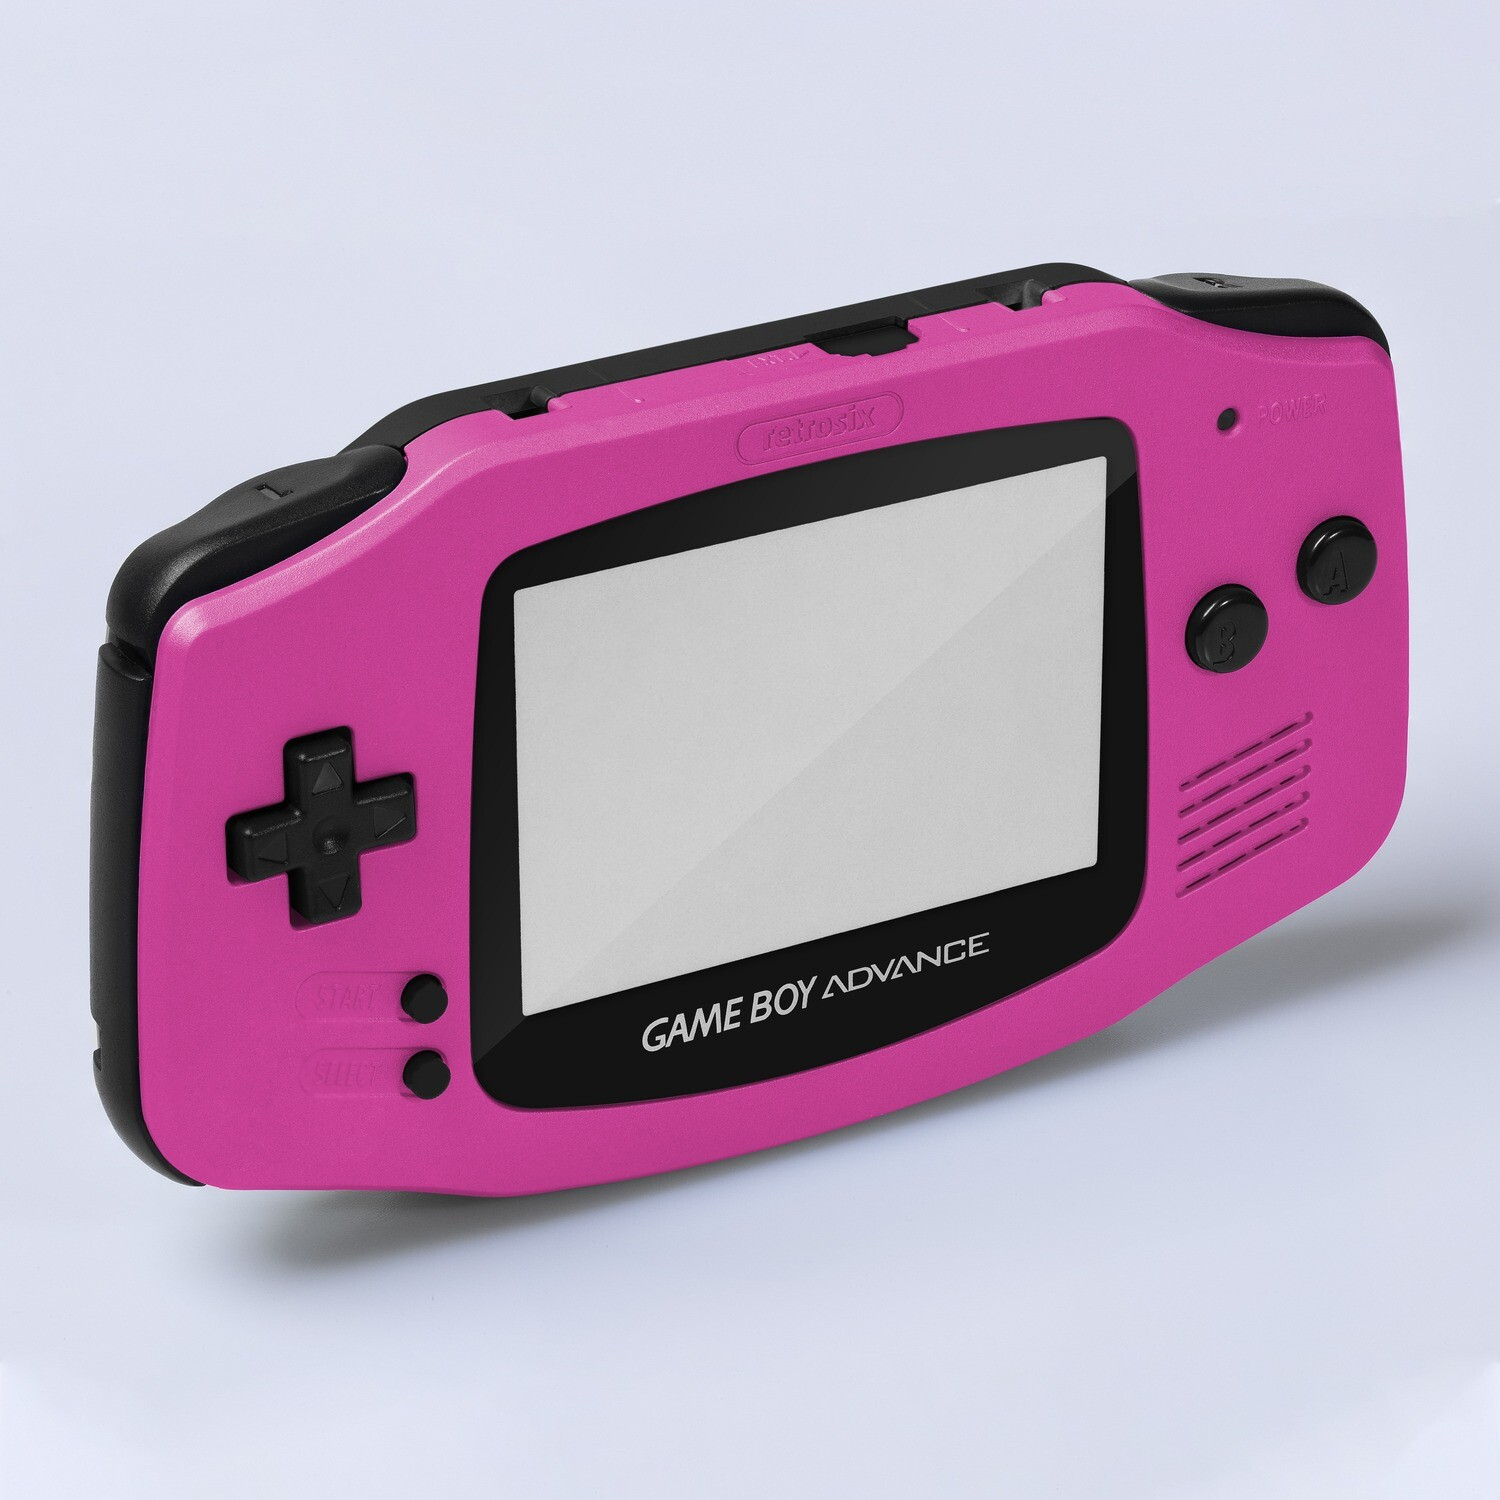 Game Boy Advance IPS USB-C Shell Kit (Pearl Pink/Black)